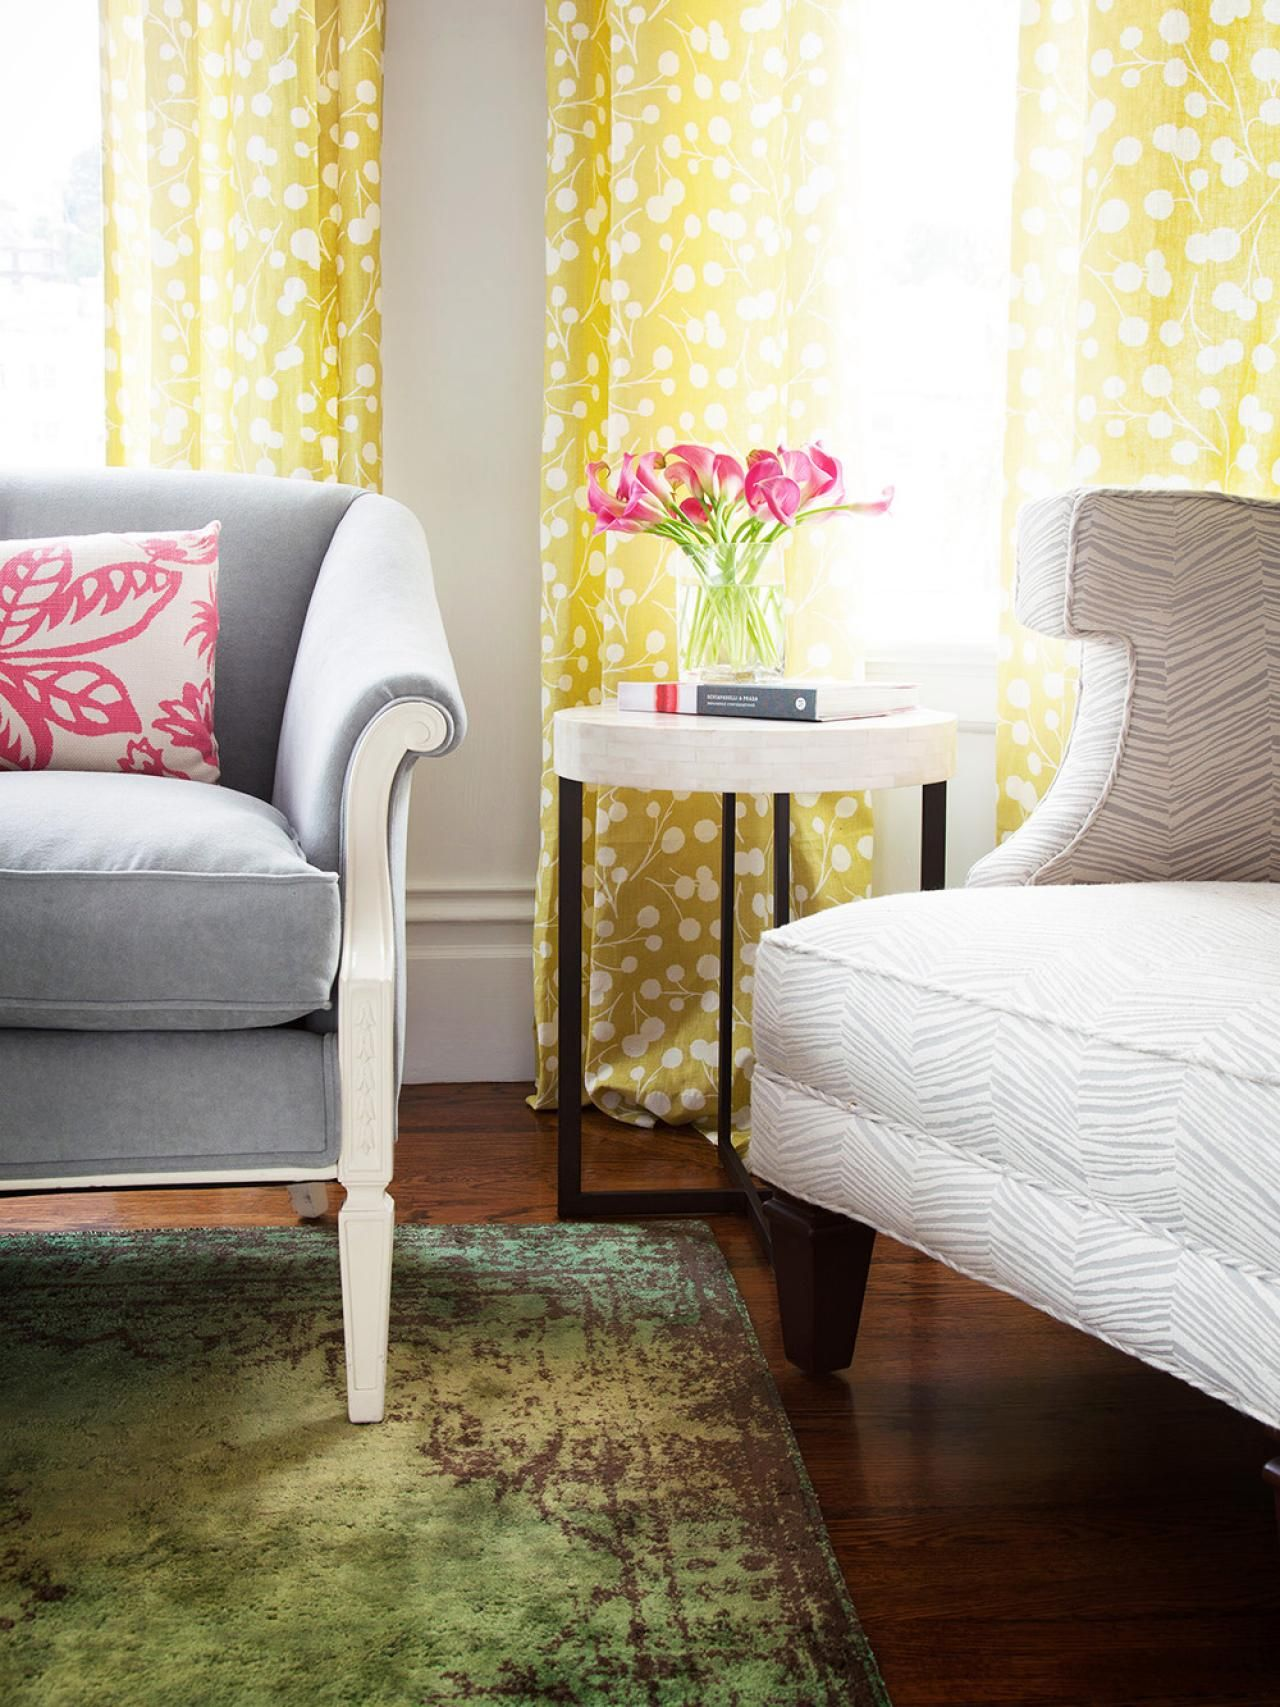 In rooms with neutral furniture, or a muted palette, Cerise {pink} can act as a breath of fresh air. Use it in accent pillows, or pluck it directly from nature